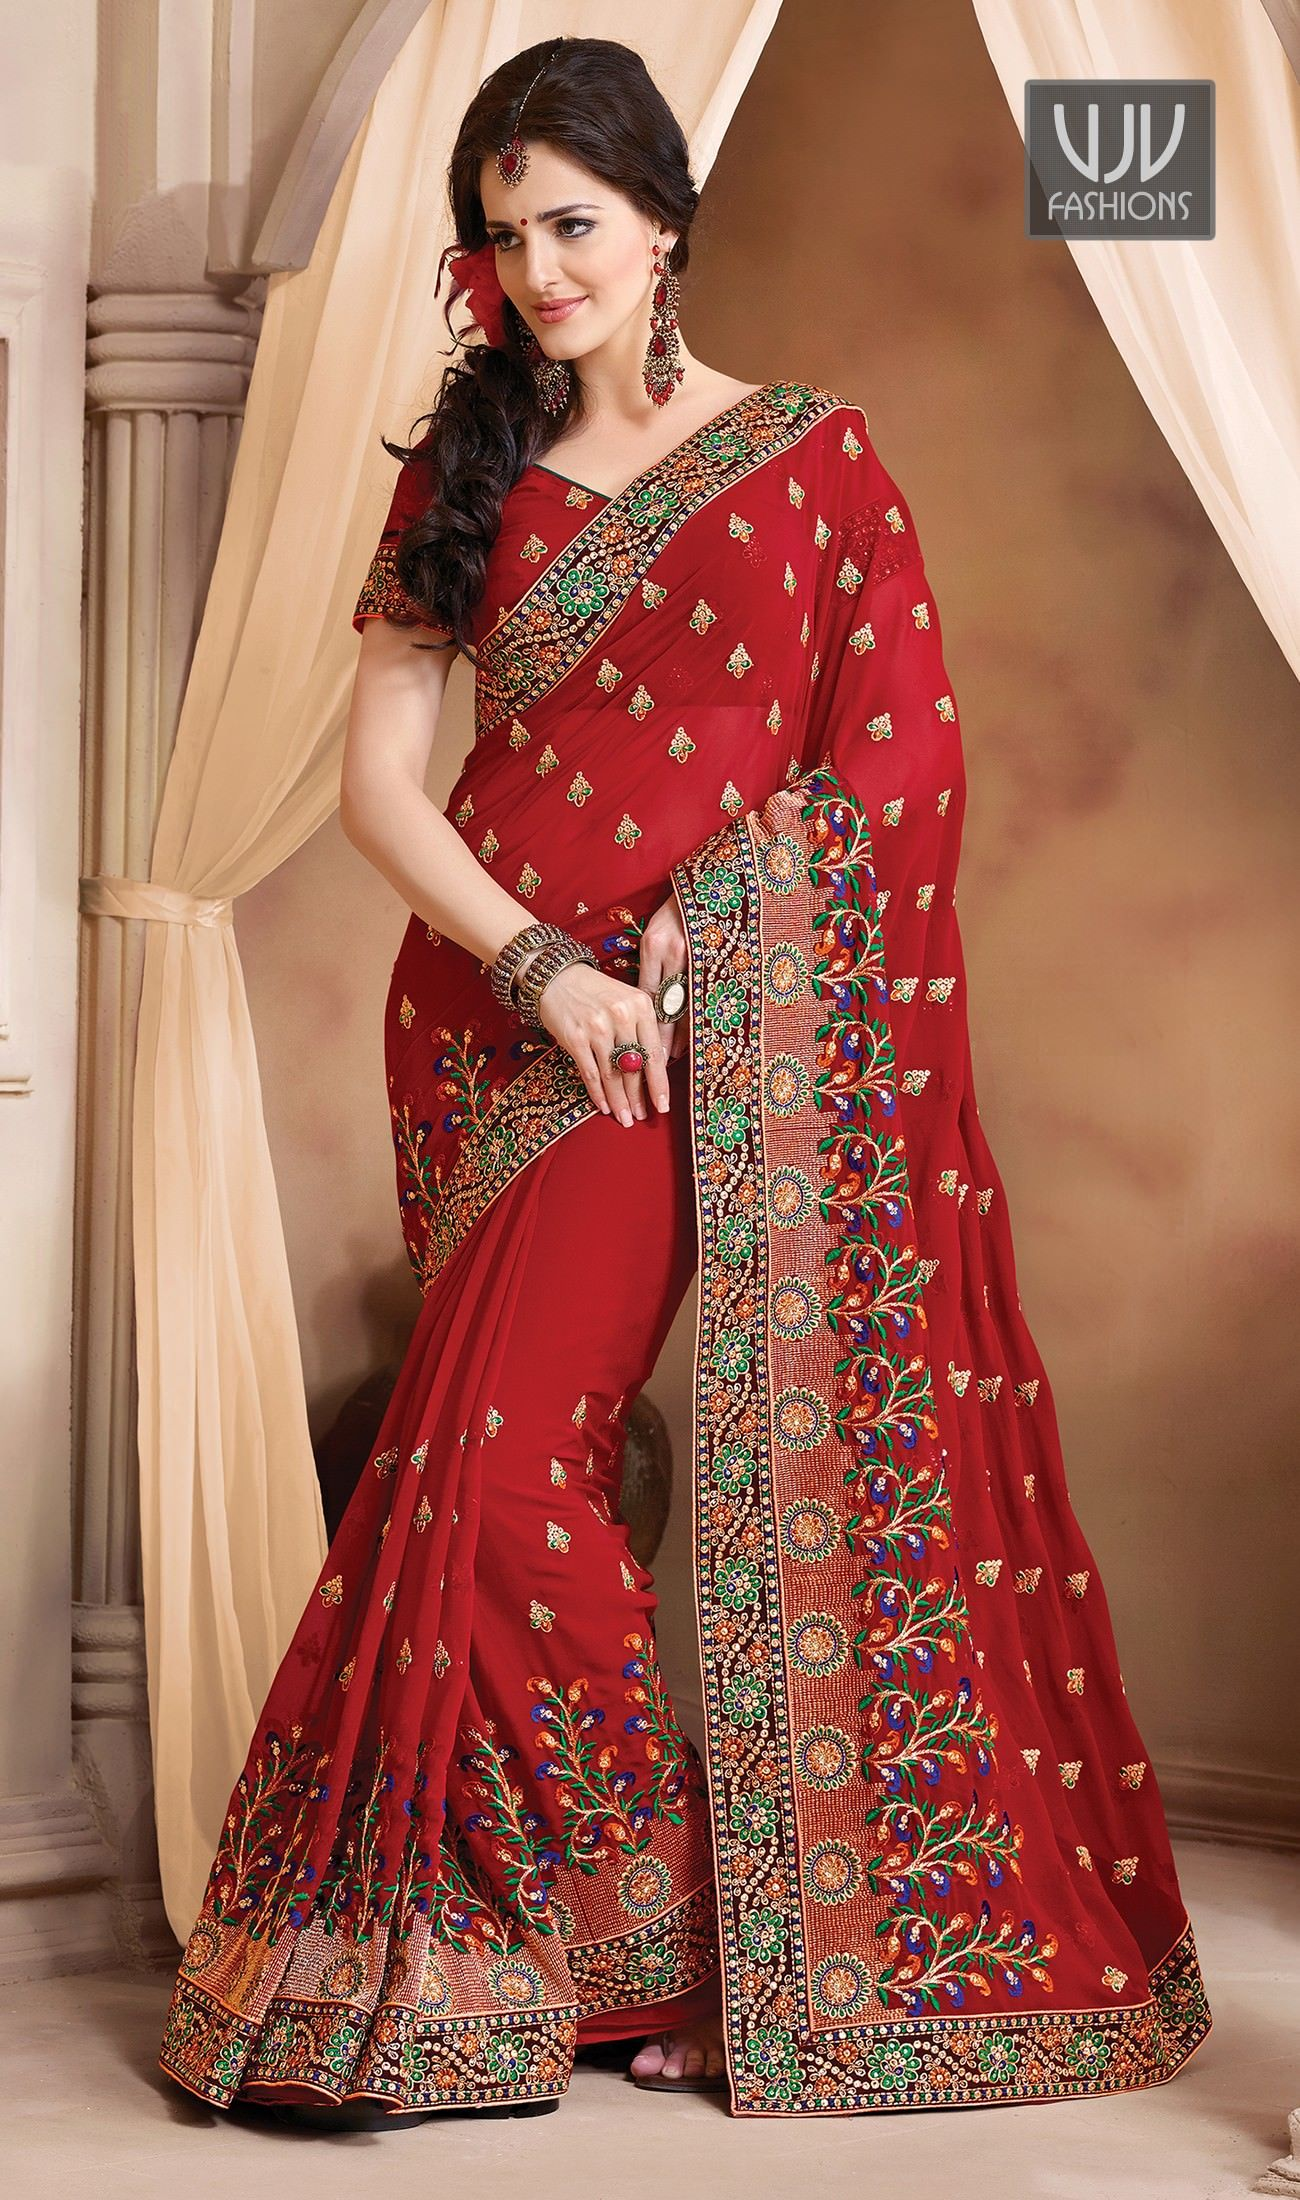 Red wedding saree by VJV Fashions. weddingsaree